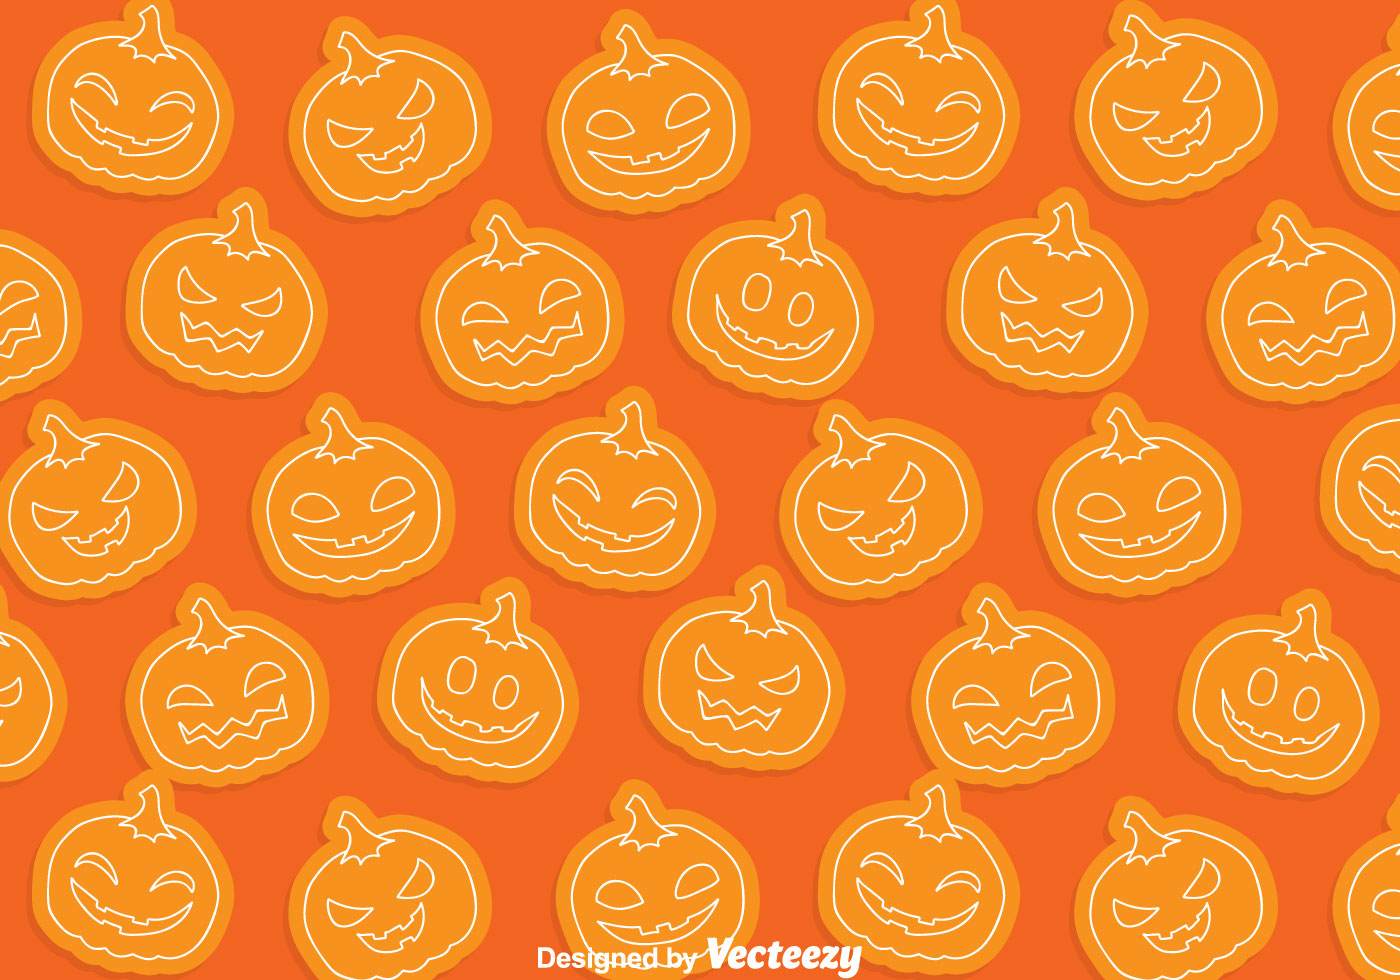 Fall White Pumpkins Wallpaper Pumpkin Pattern Download Free Vector Art Stock Graphics